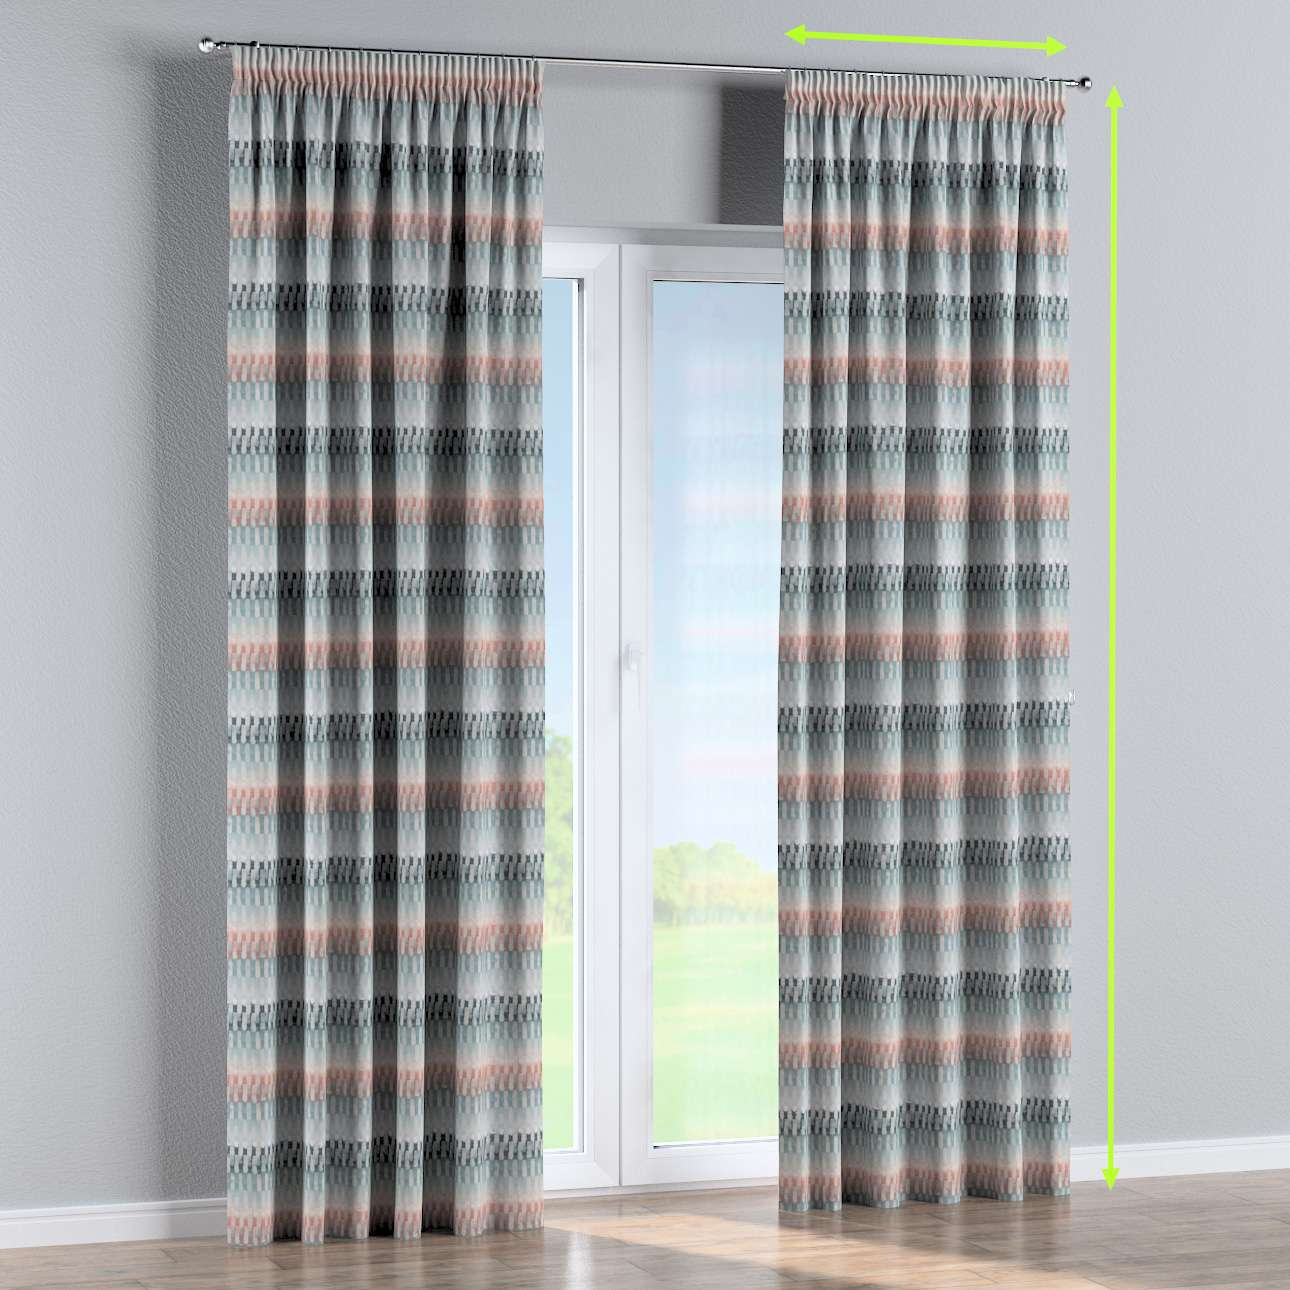 Pencil pleat curtain in collection Pastel Forest, fabric: 142-51